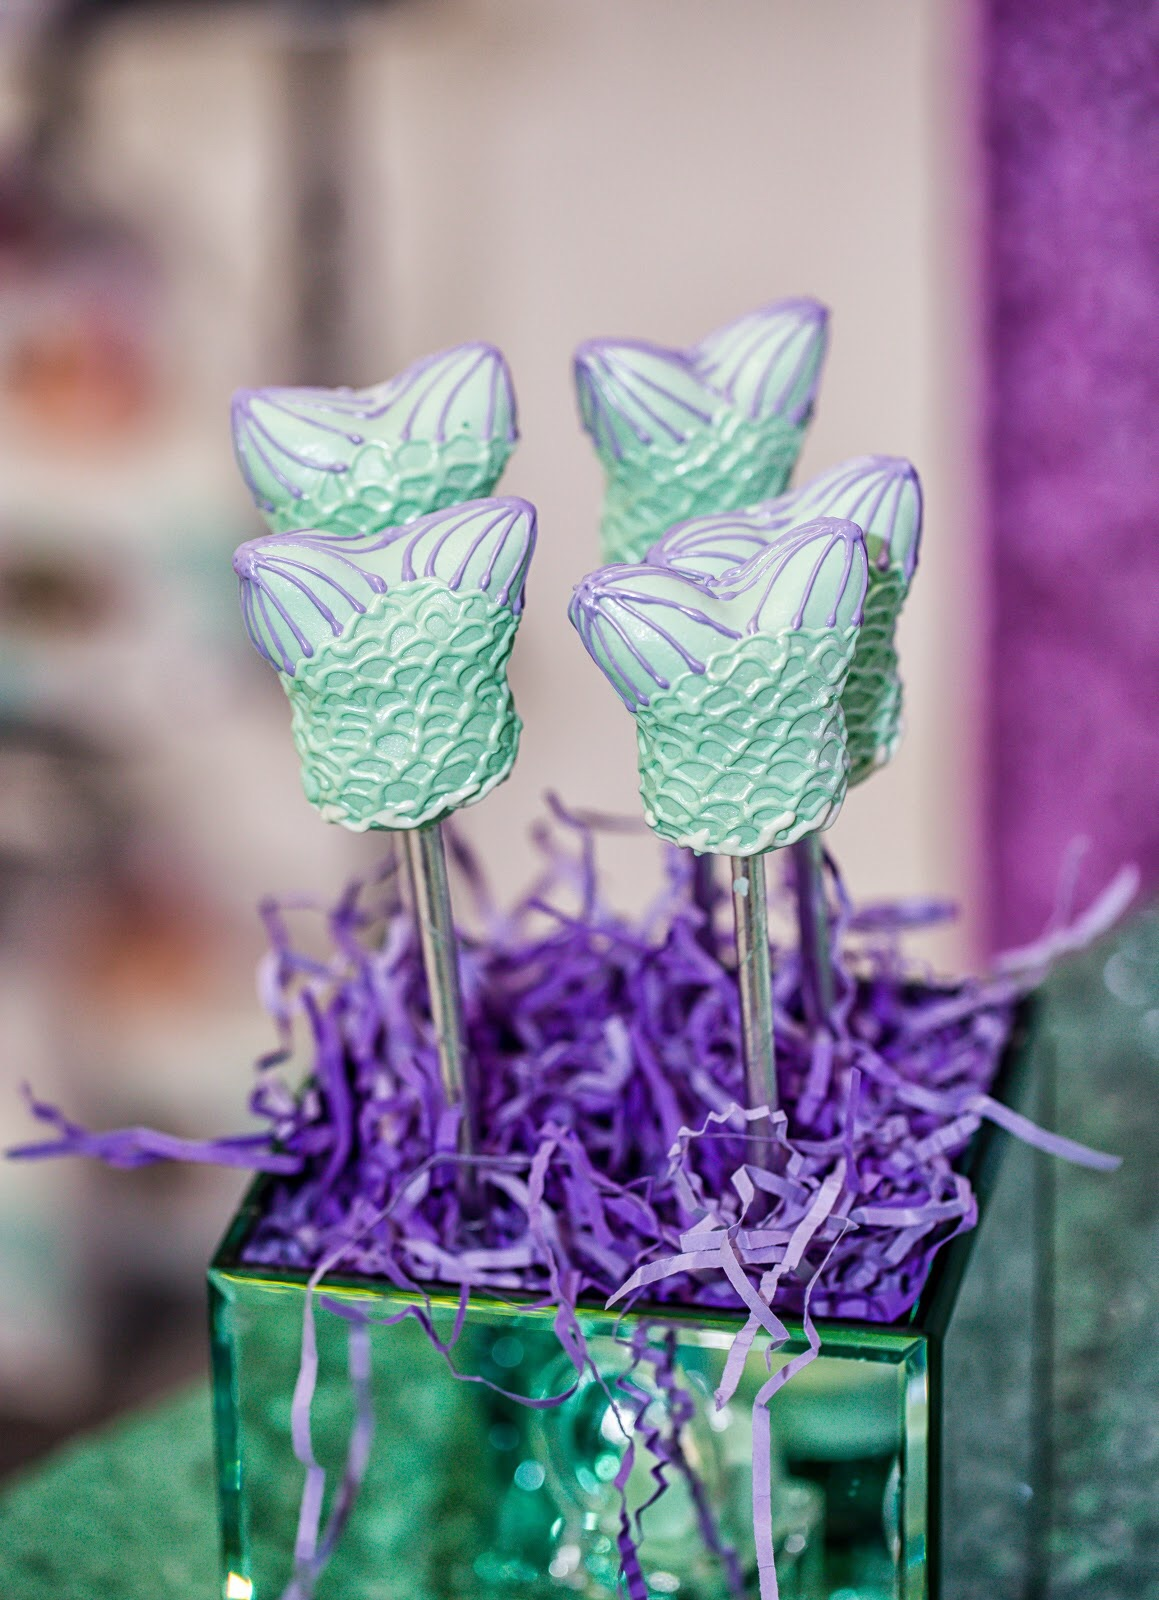 Mermaid Fin Cake Pops